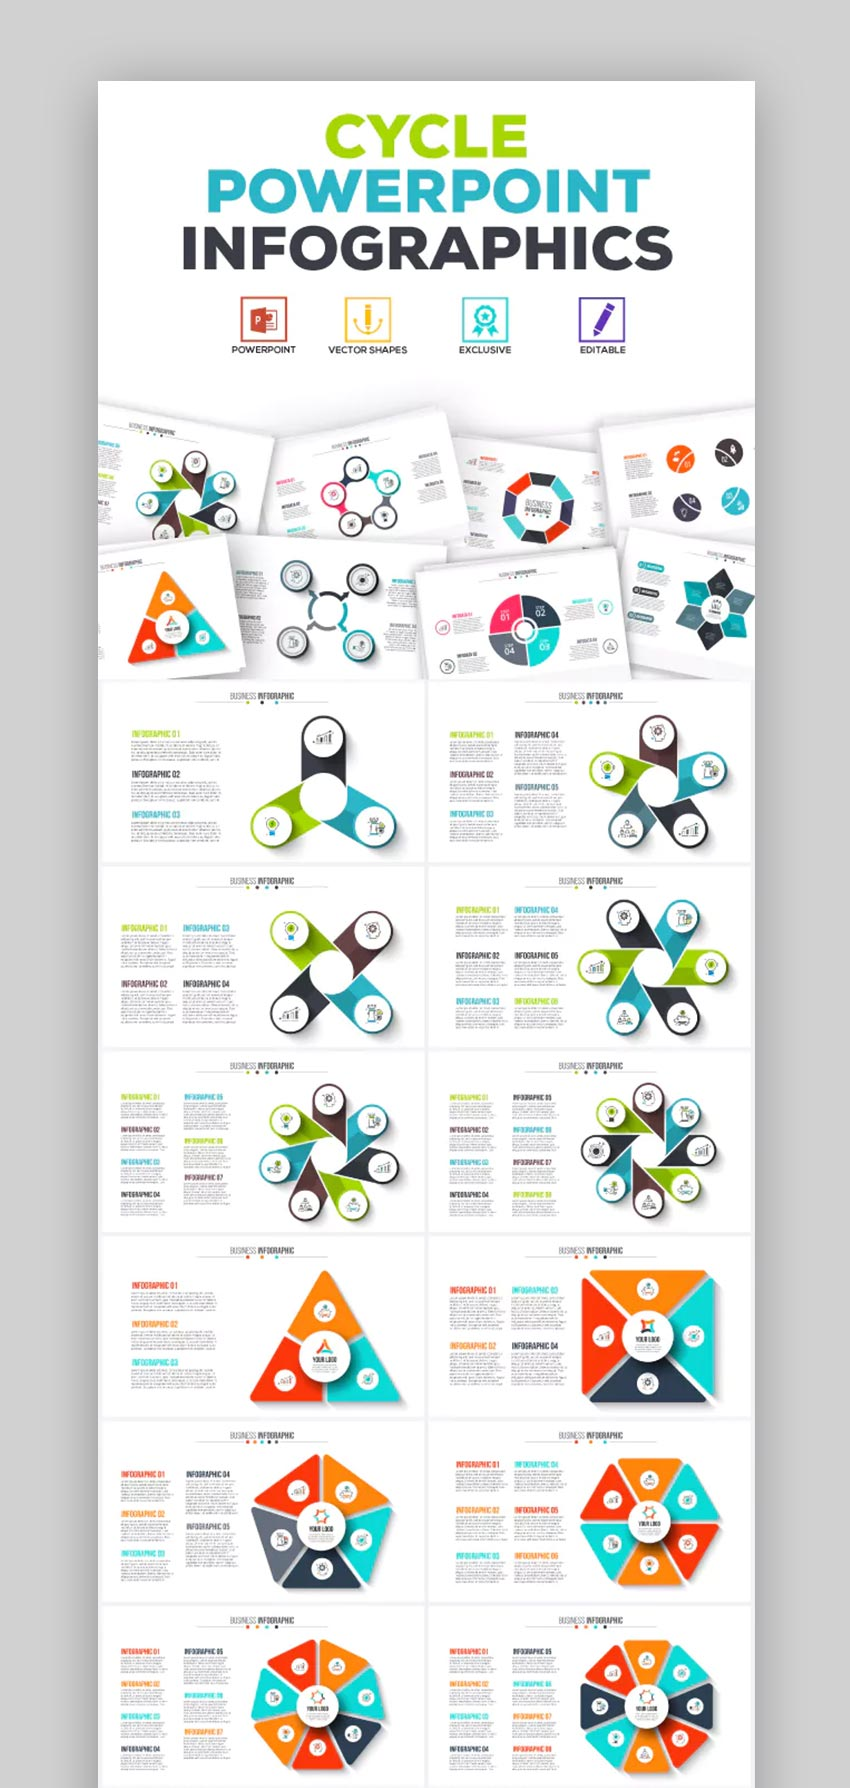 Cycle PowerPoint Infographics